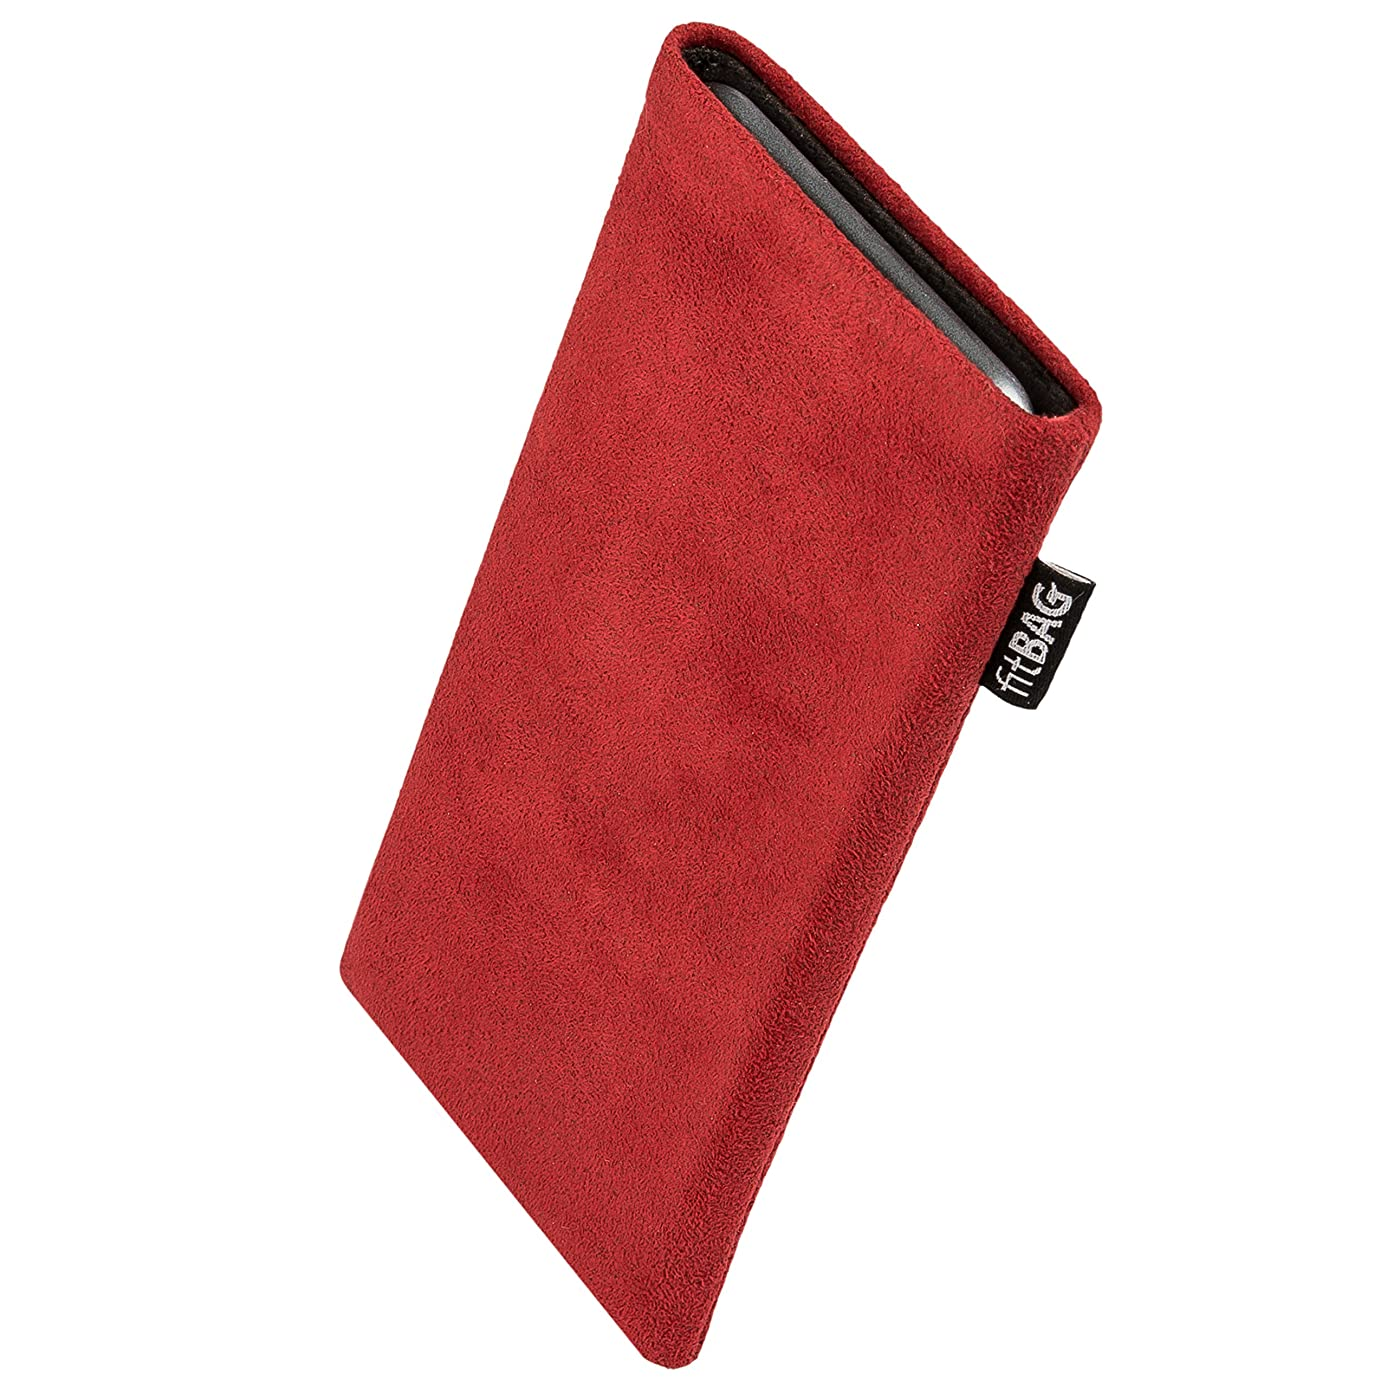 fitBAG Classic Red Custom Tailored Sleeve for Sony Ericsson W508 Walkman. Genuine Alcantara Pouch with Integrated Microfibre Lining for Display Cleaning